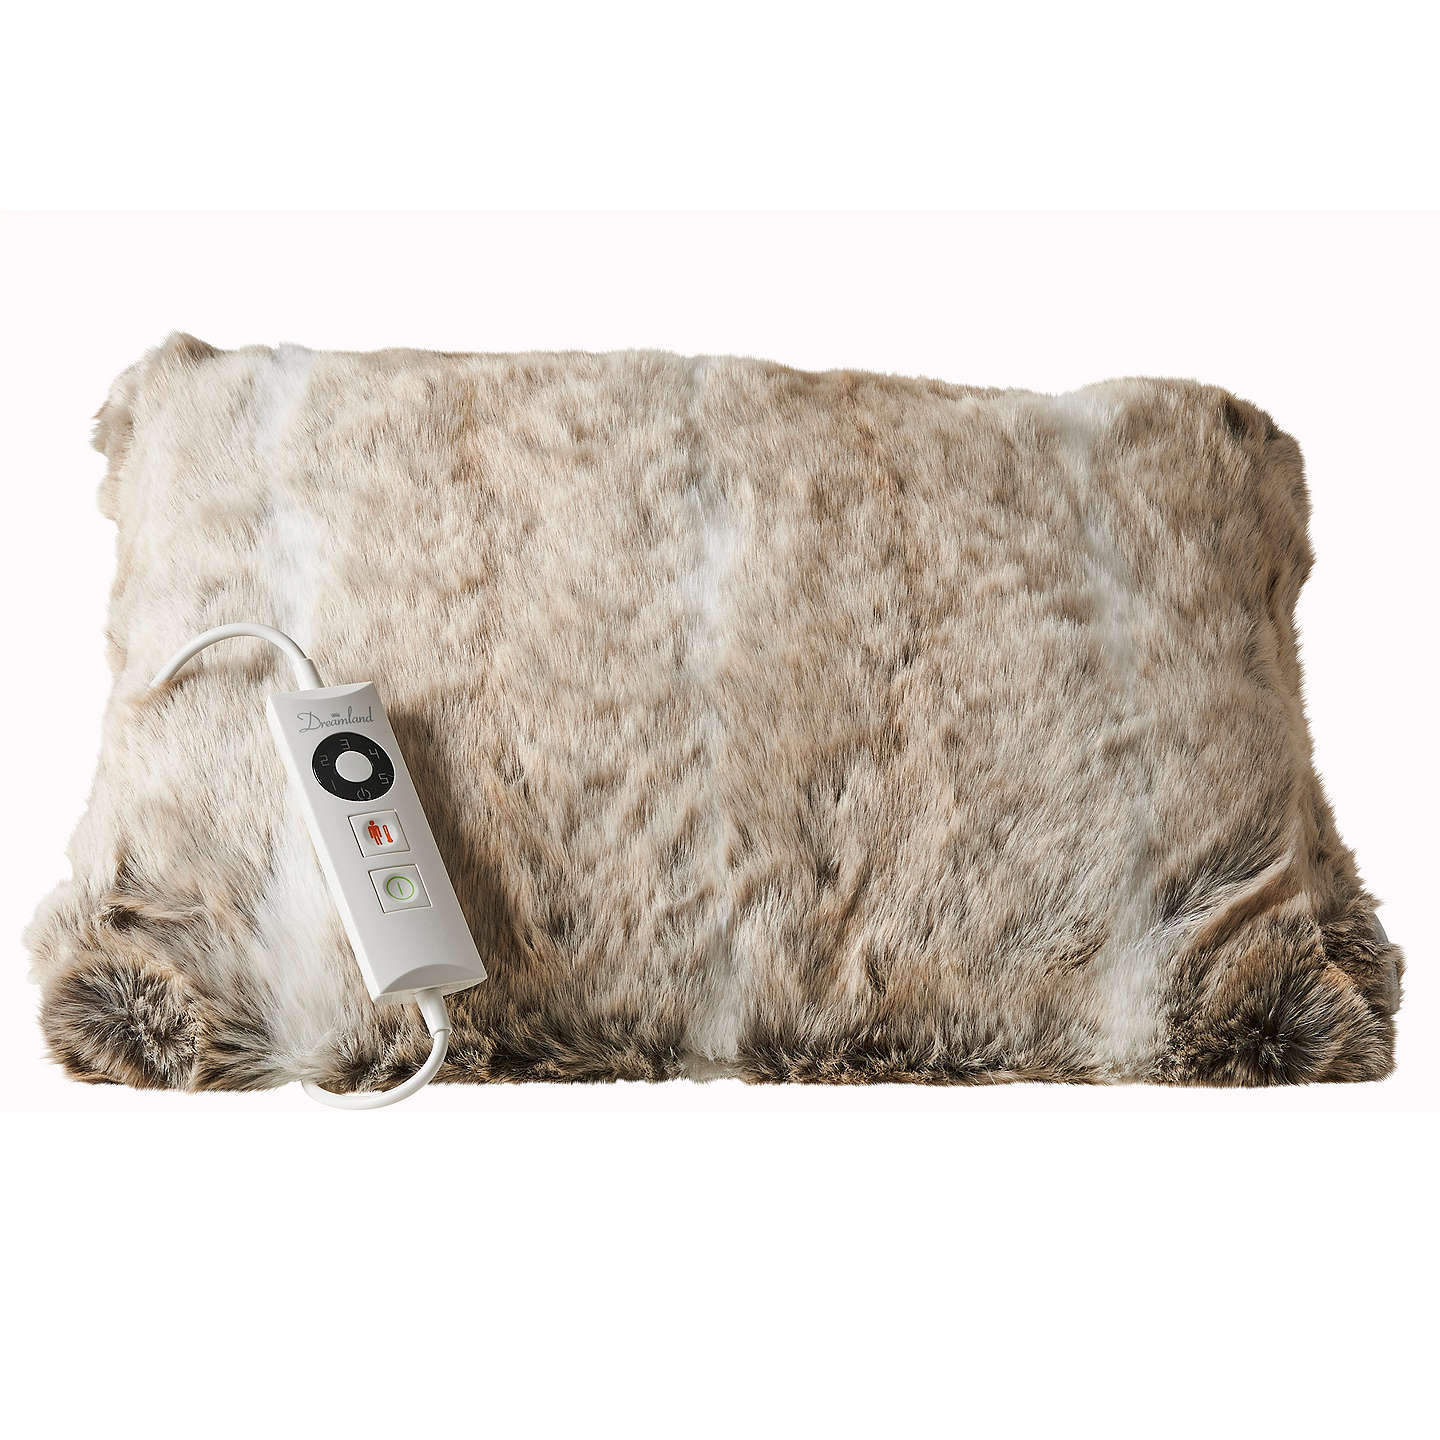 Relaxwell Deluxe Faux Fur Heated Cushion At John Lewis